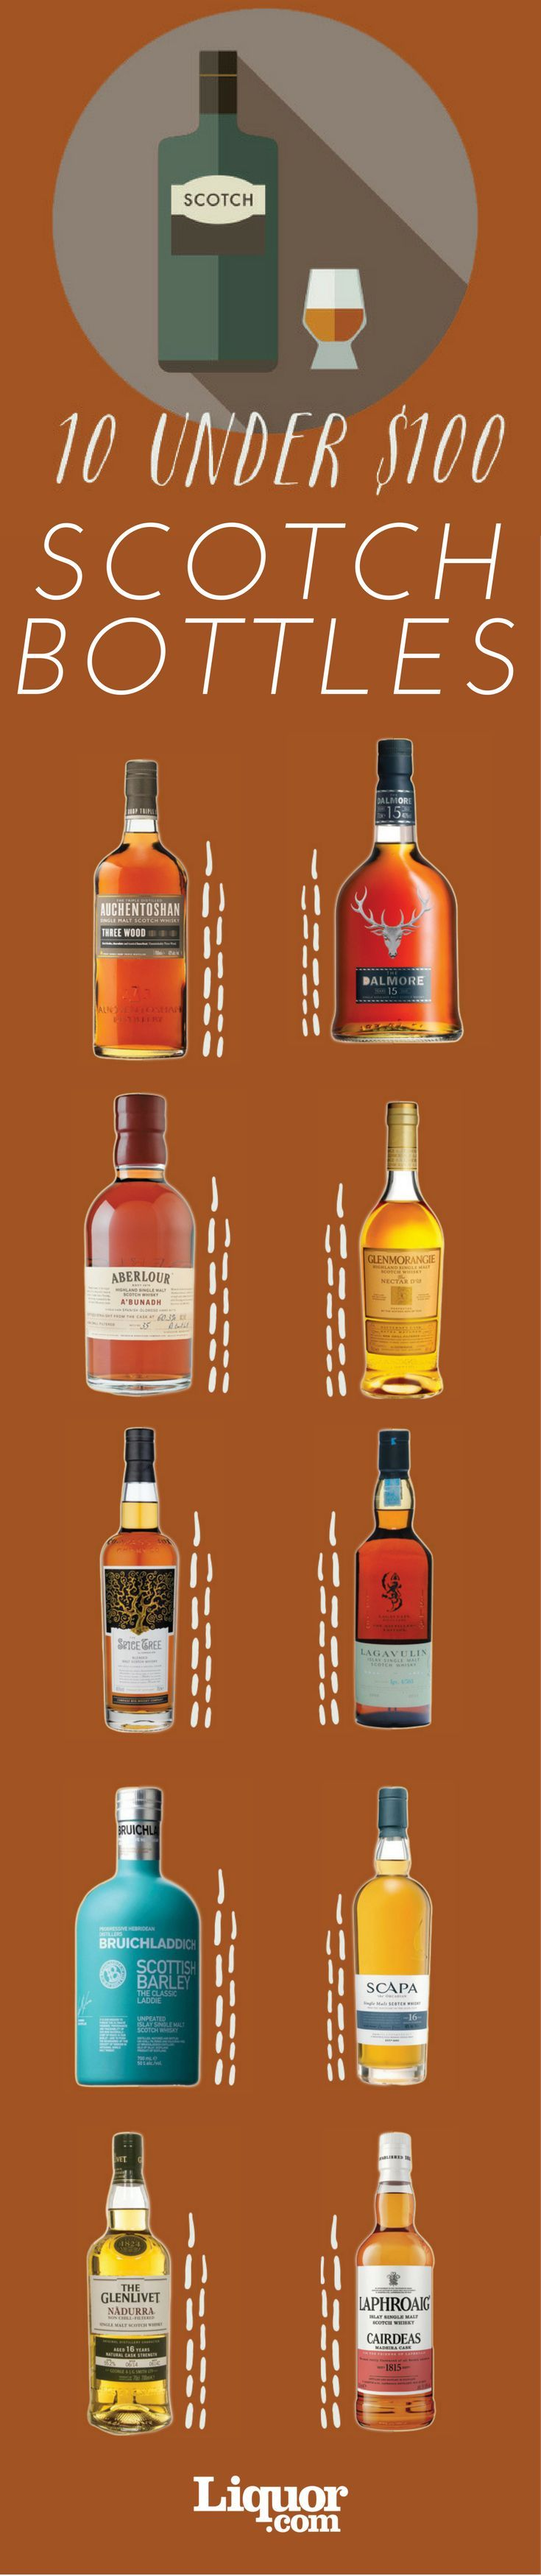 You know who knows best which bottles to buy for holiday gifting? The people who pour and sell drinks—that's who. For 2016, we asked dozens of top bartending and spirits industry professionals to tell us which #Scotch bottles under $100 they love and why.